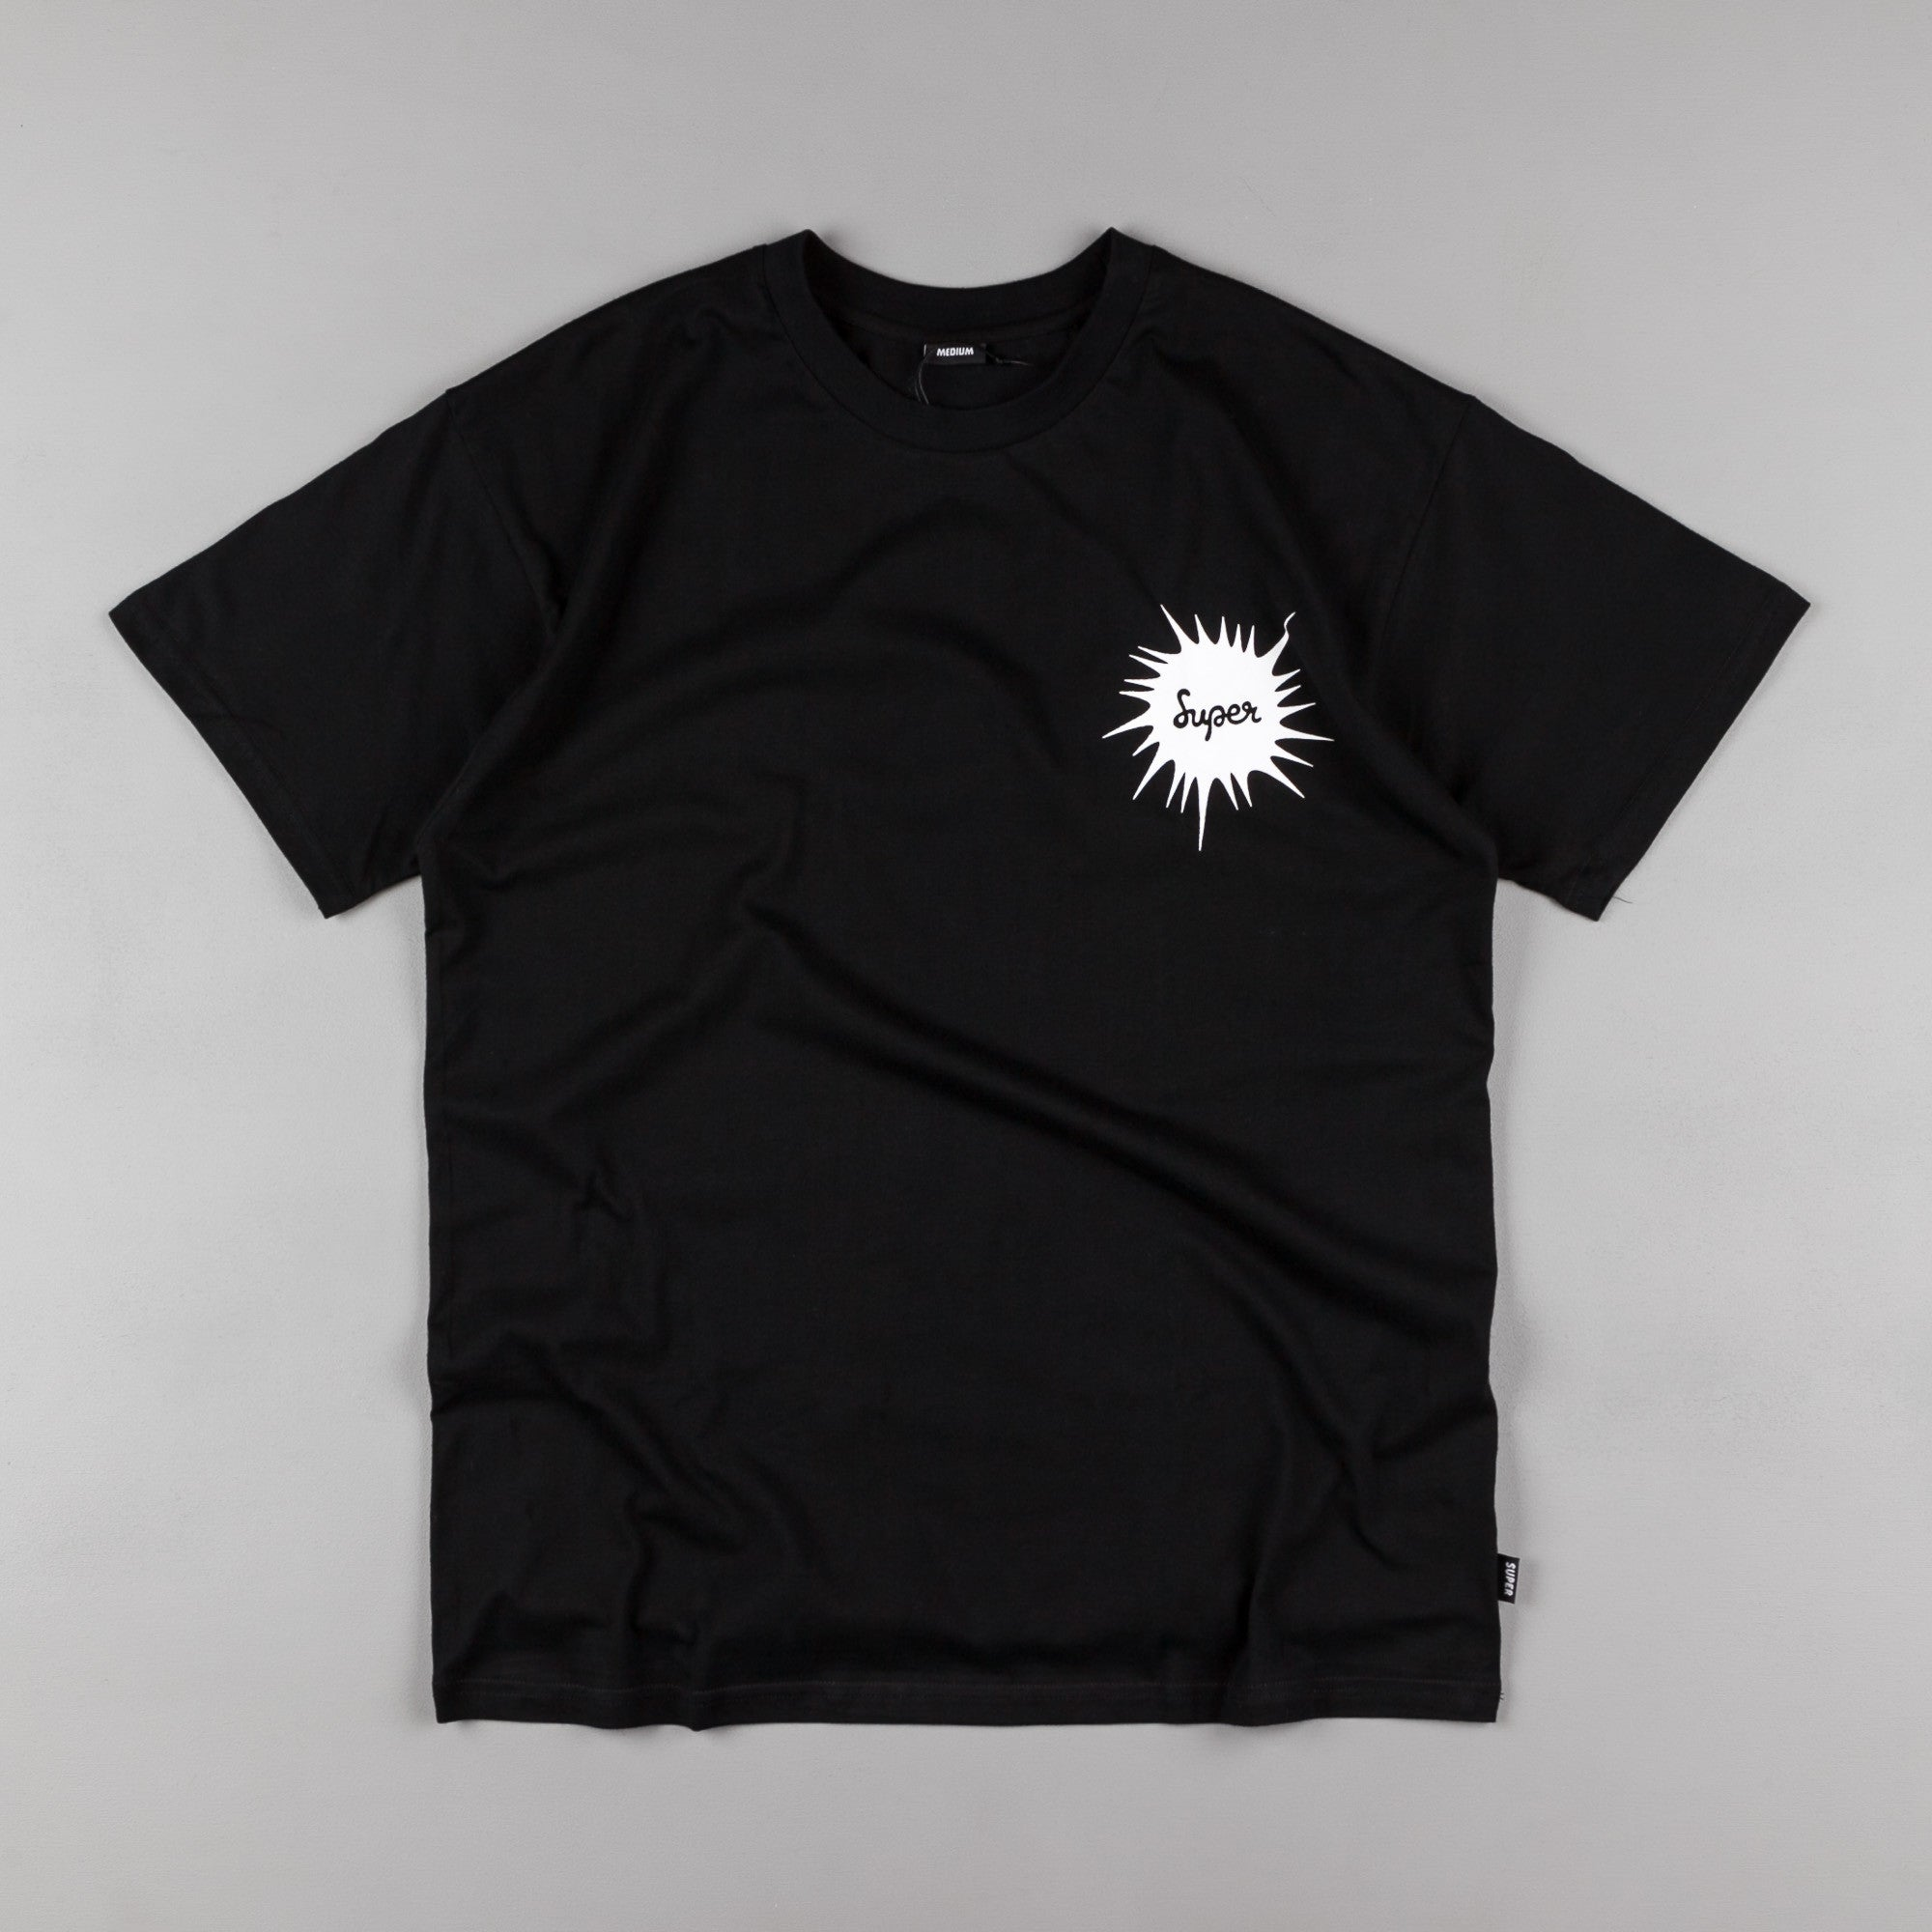 Colorsuper Frequency T-Shirt - Black / White